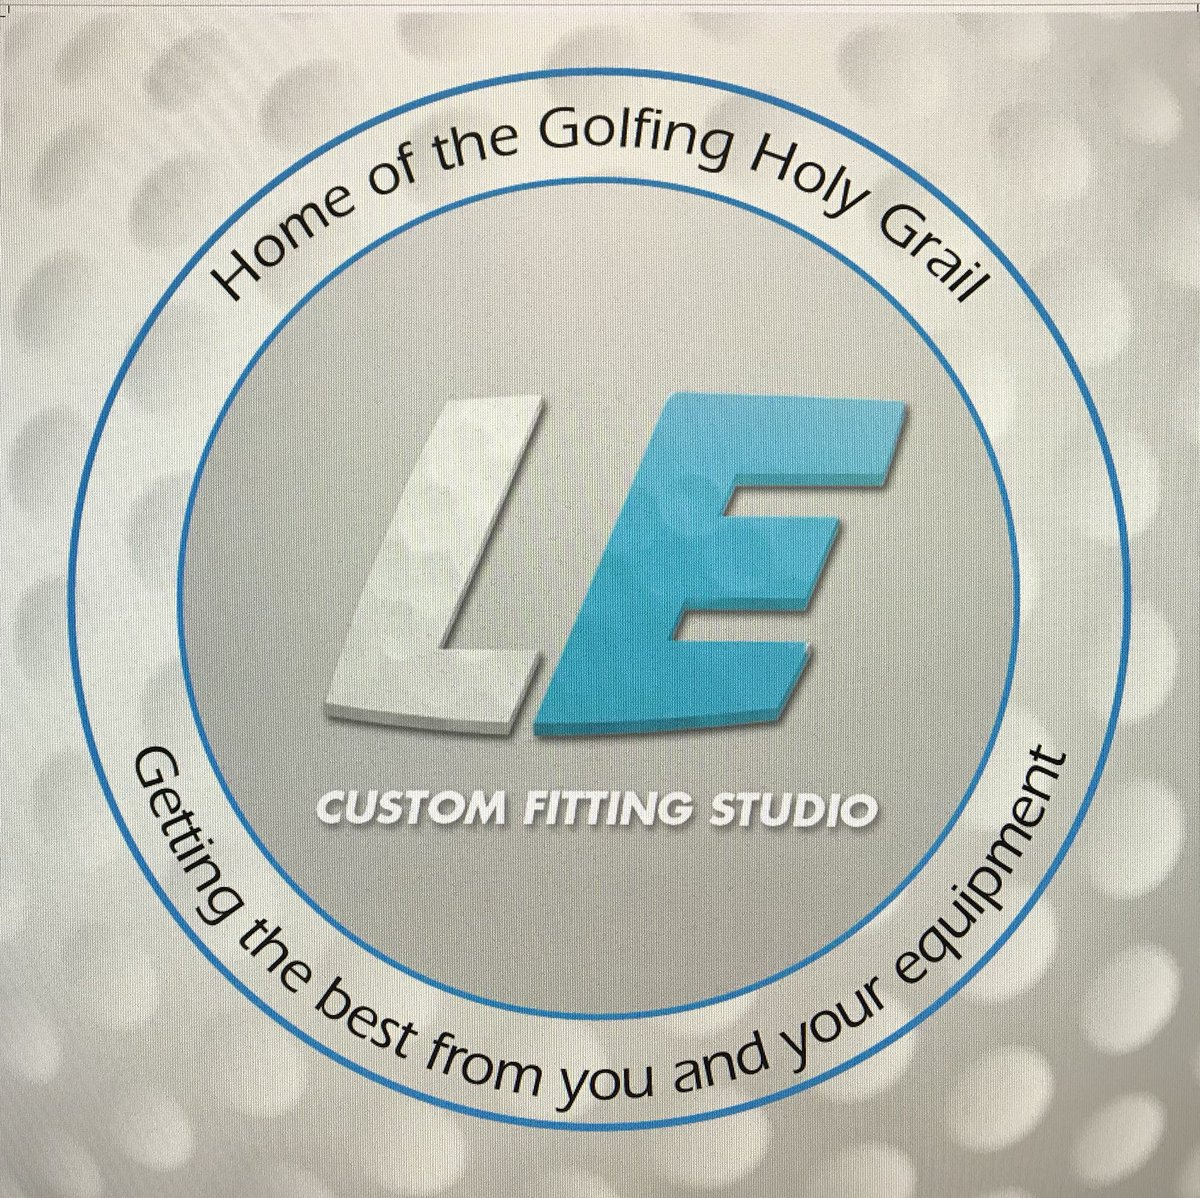 Latest newsletter from CustomGolfEssex